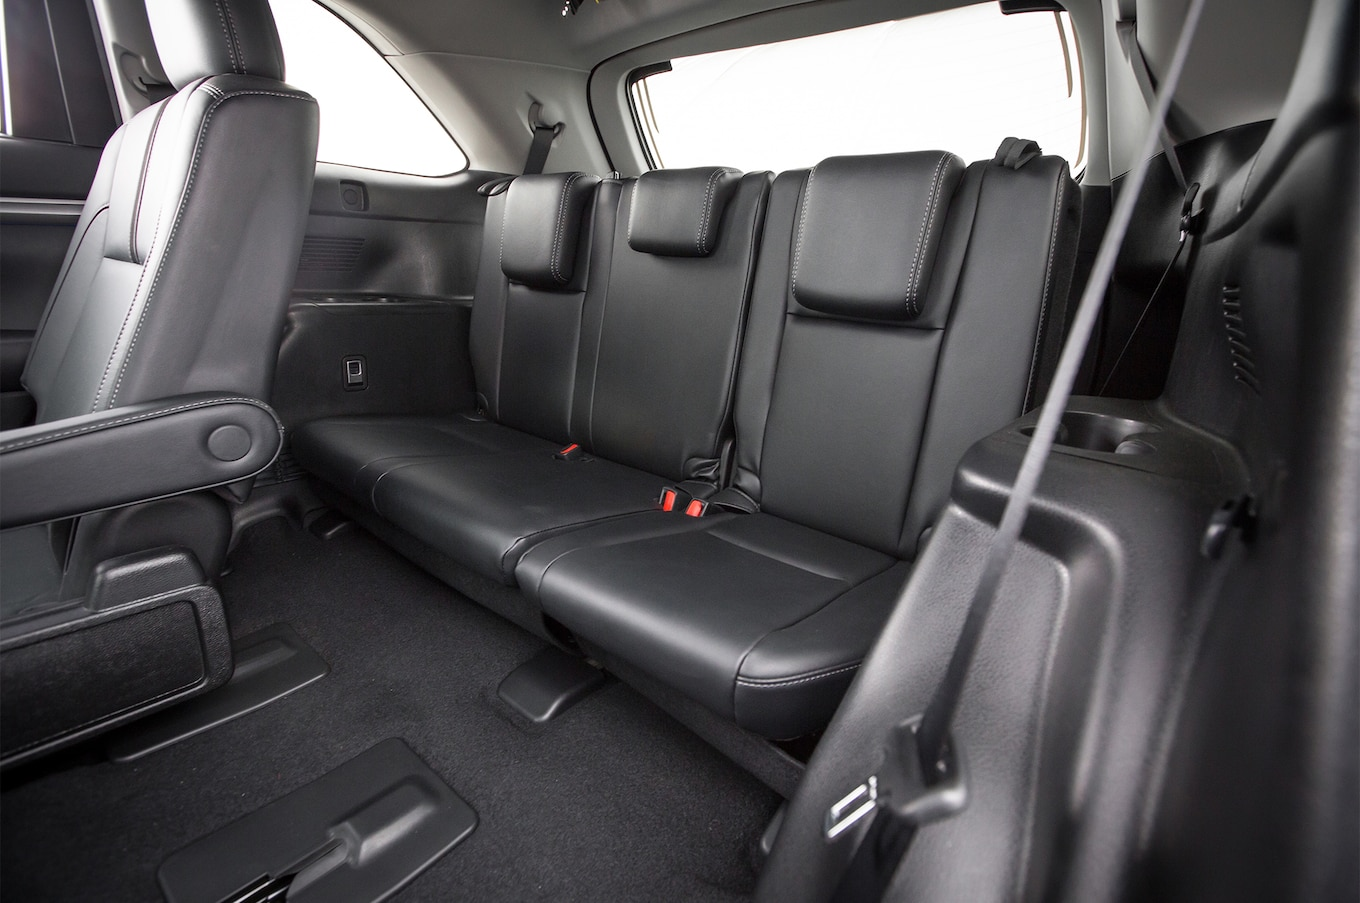 Toyota Highlander Captains Chairs Suv With Captains Chairs And Third Row 2017 2018 2019